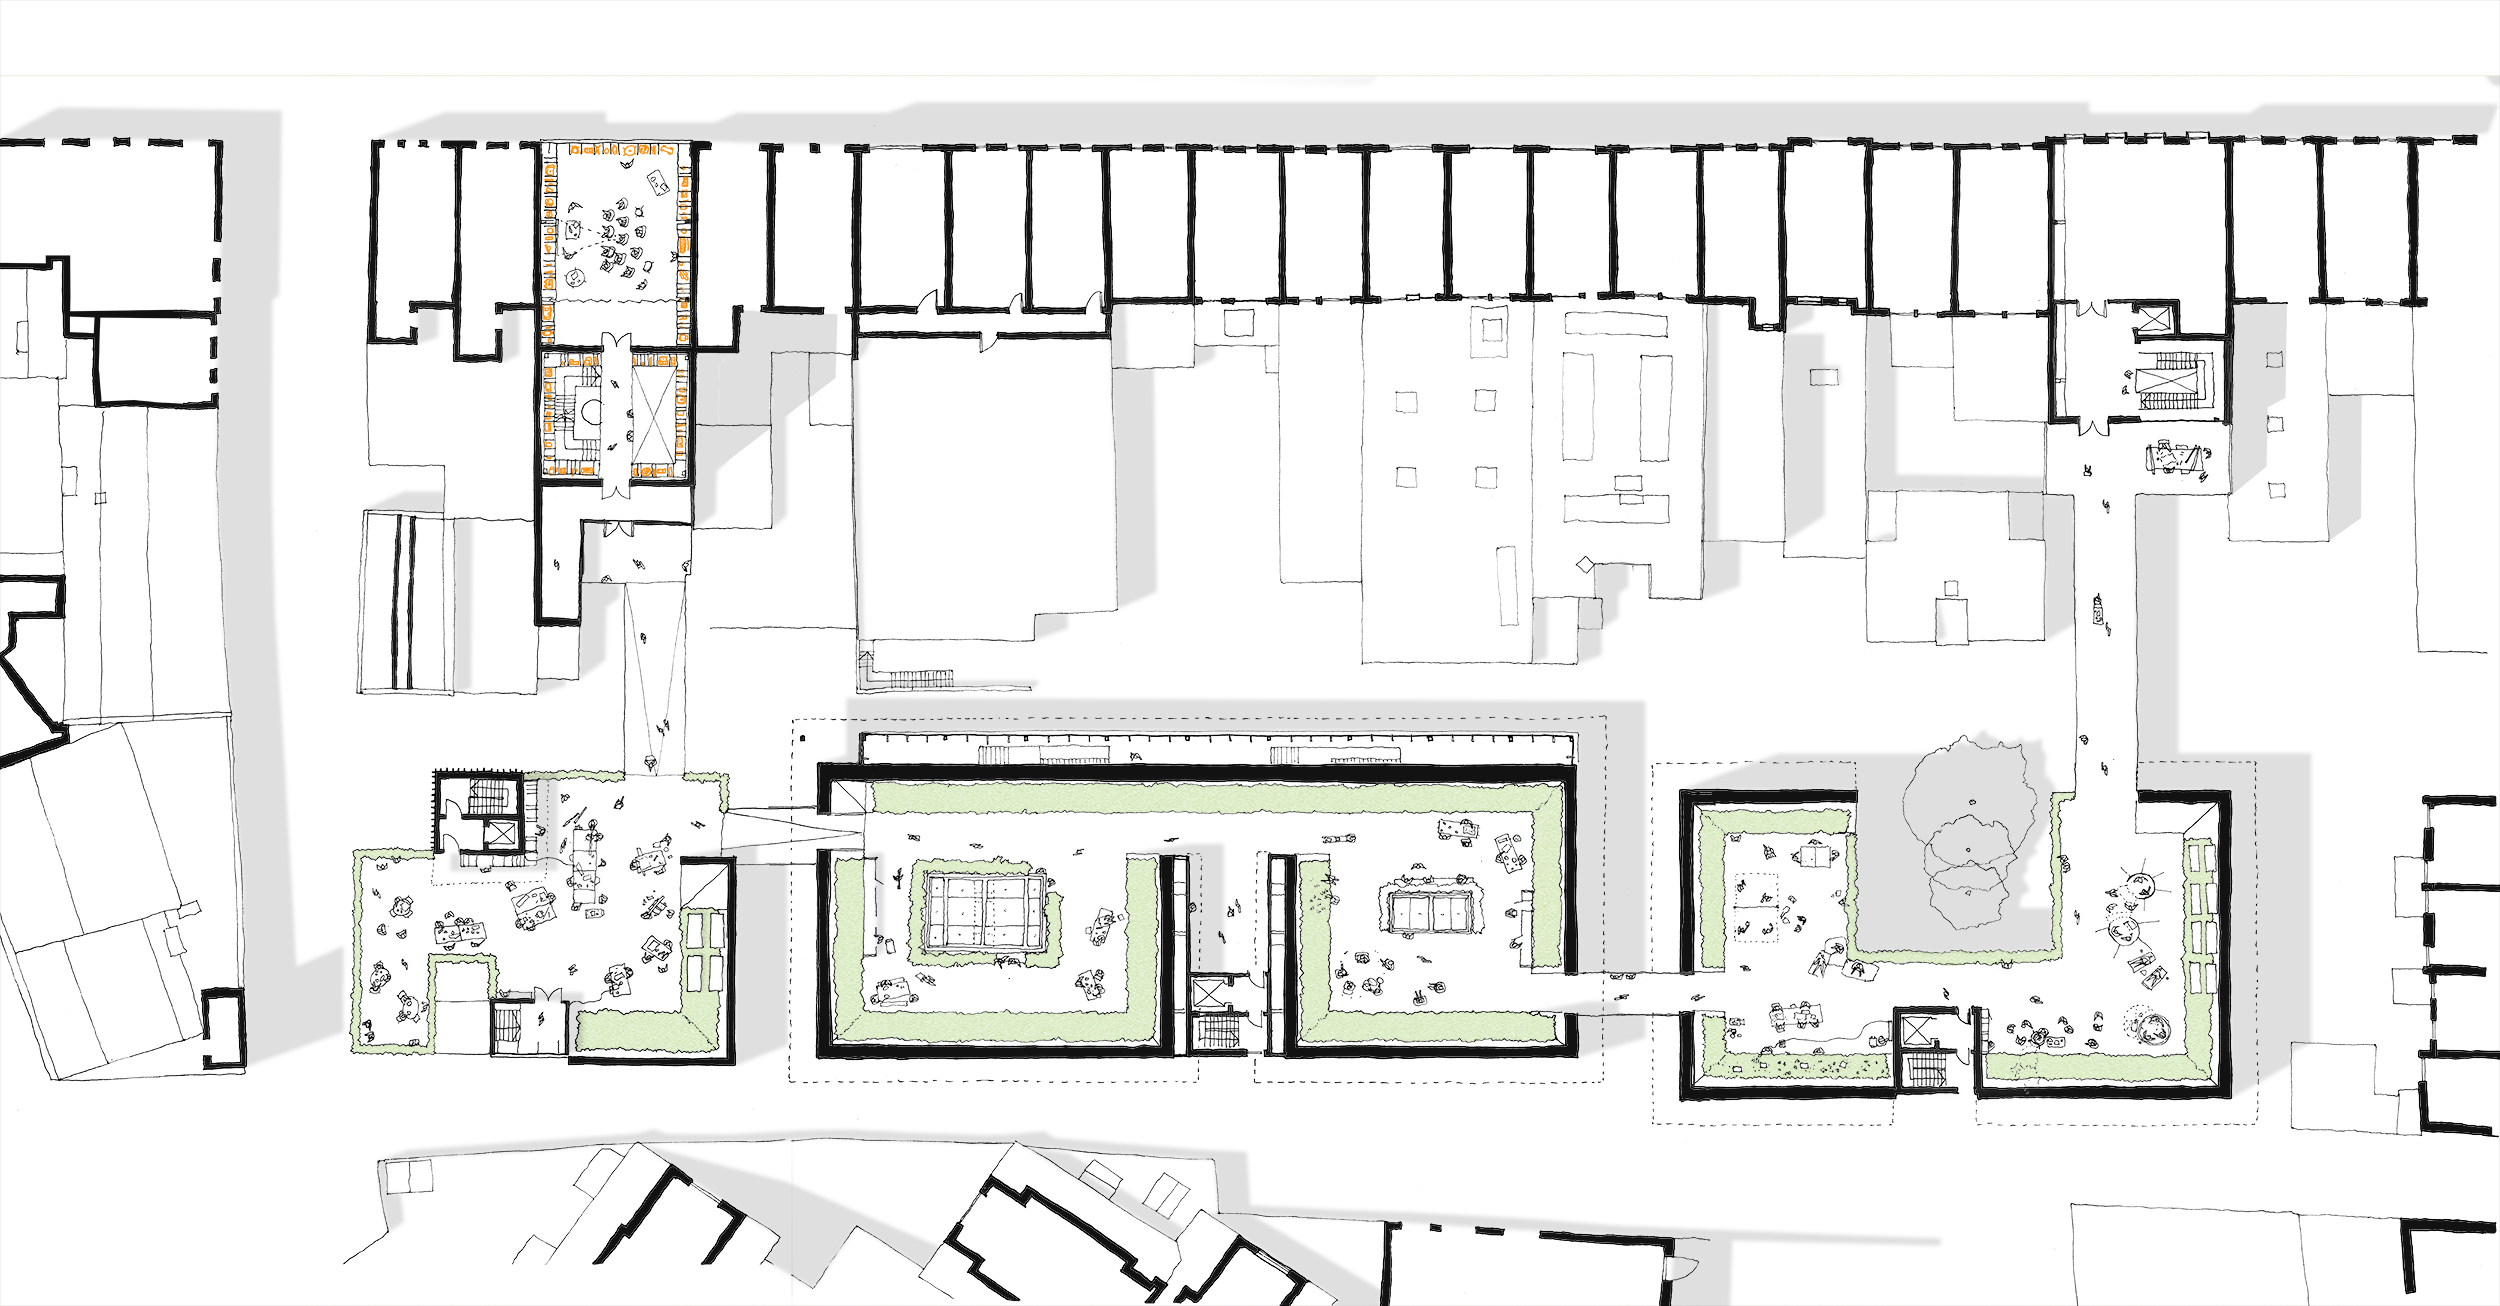 First floor plan – a rooftop for all